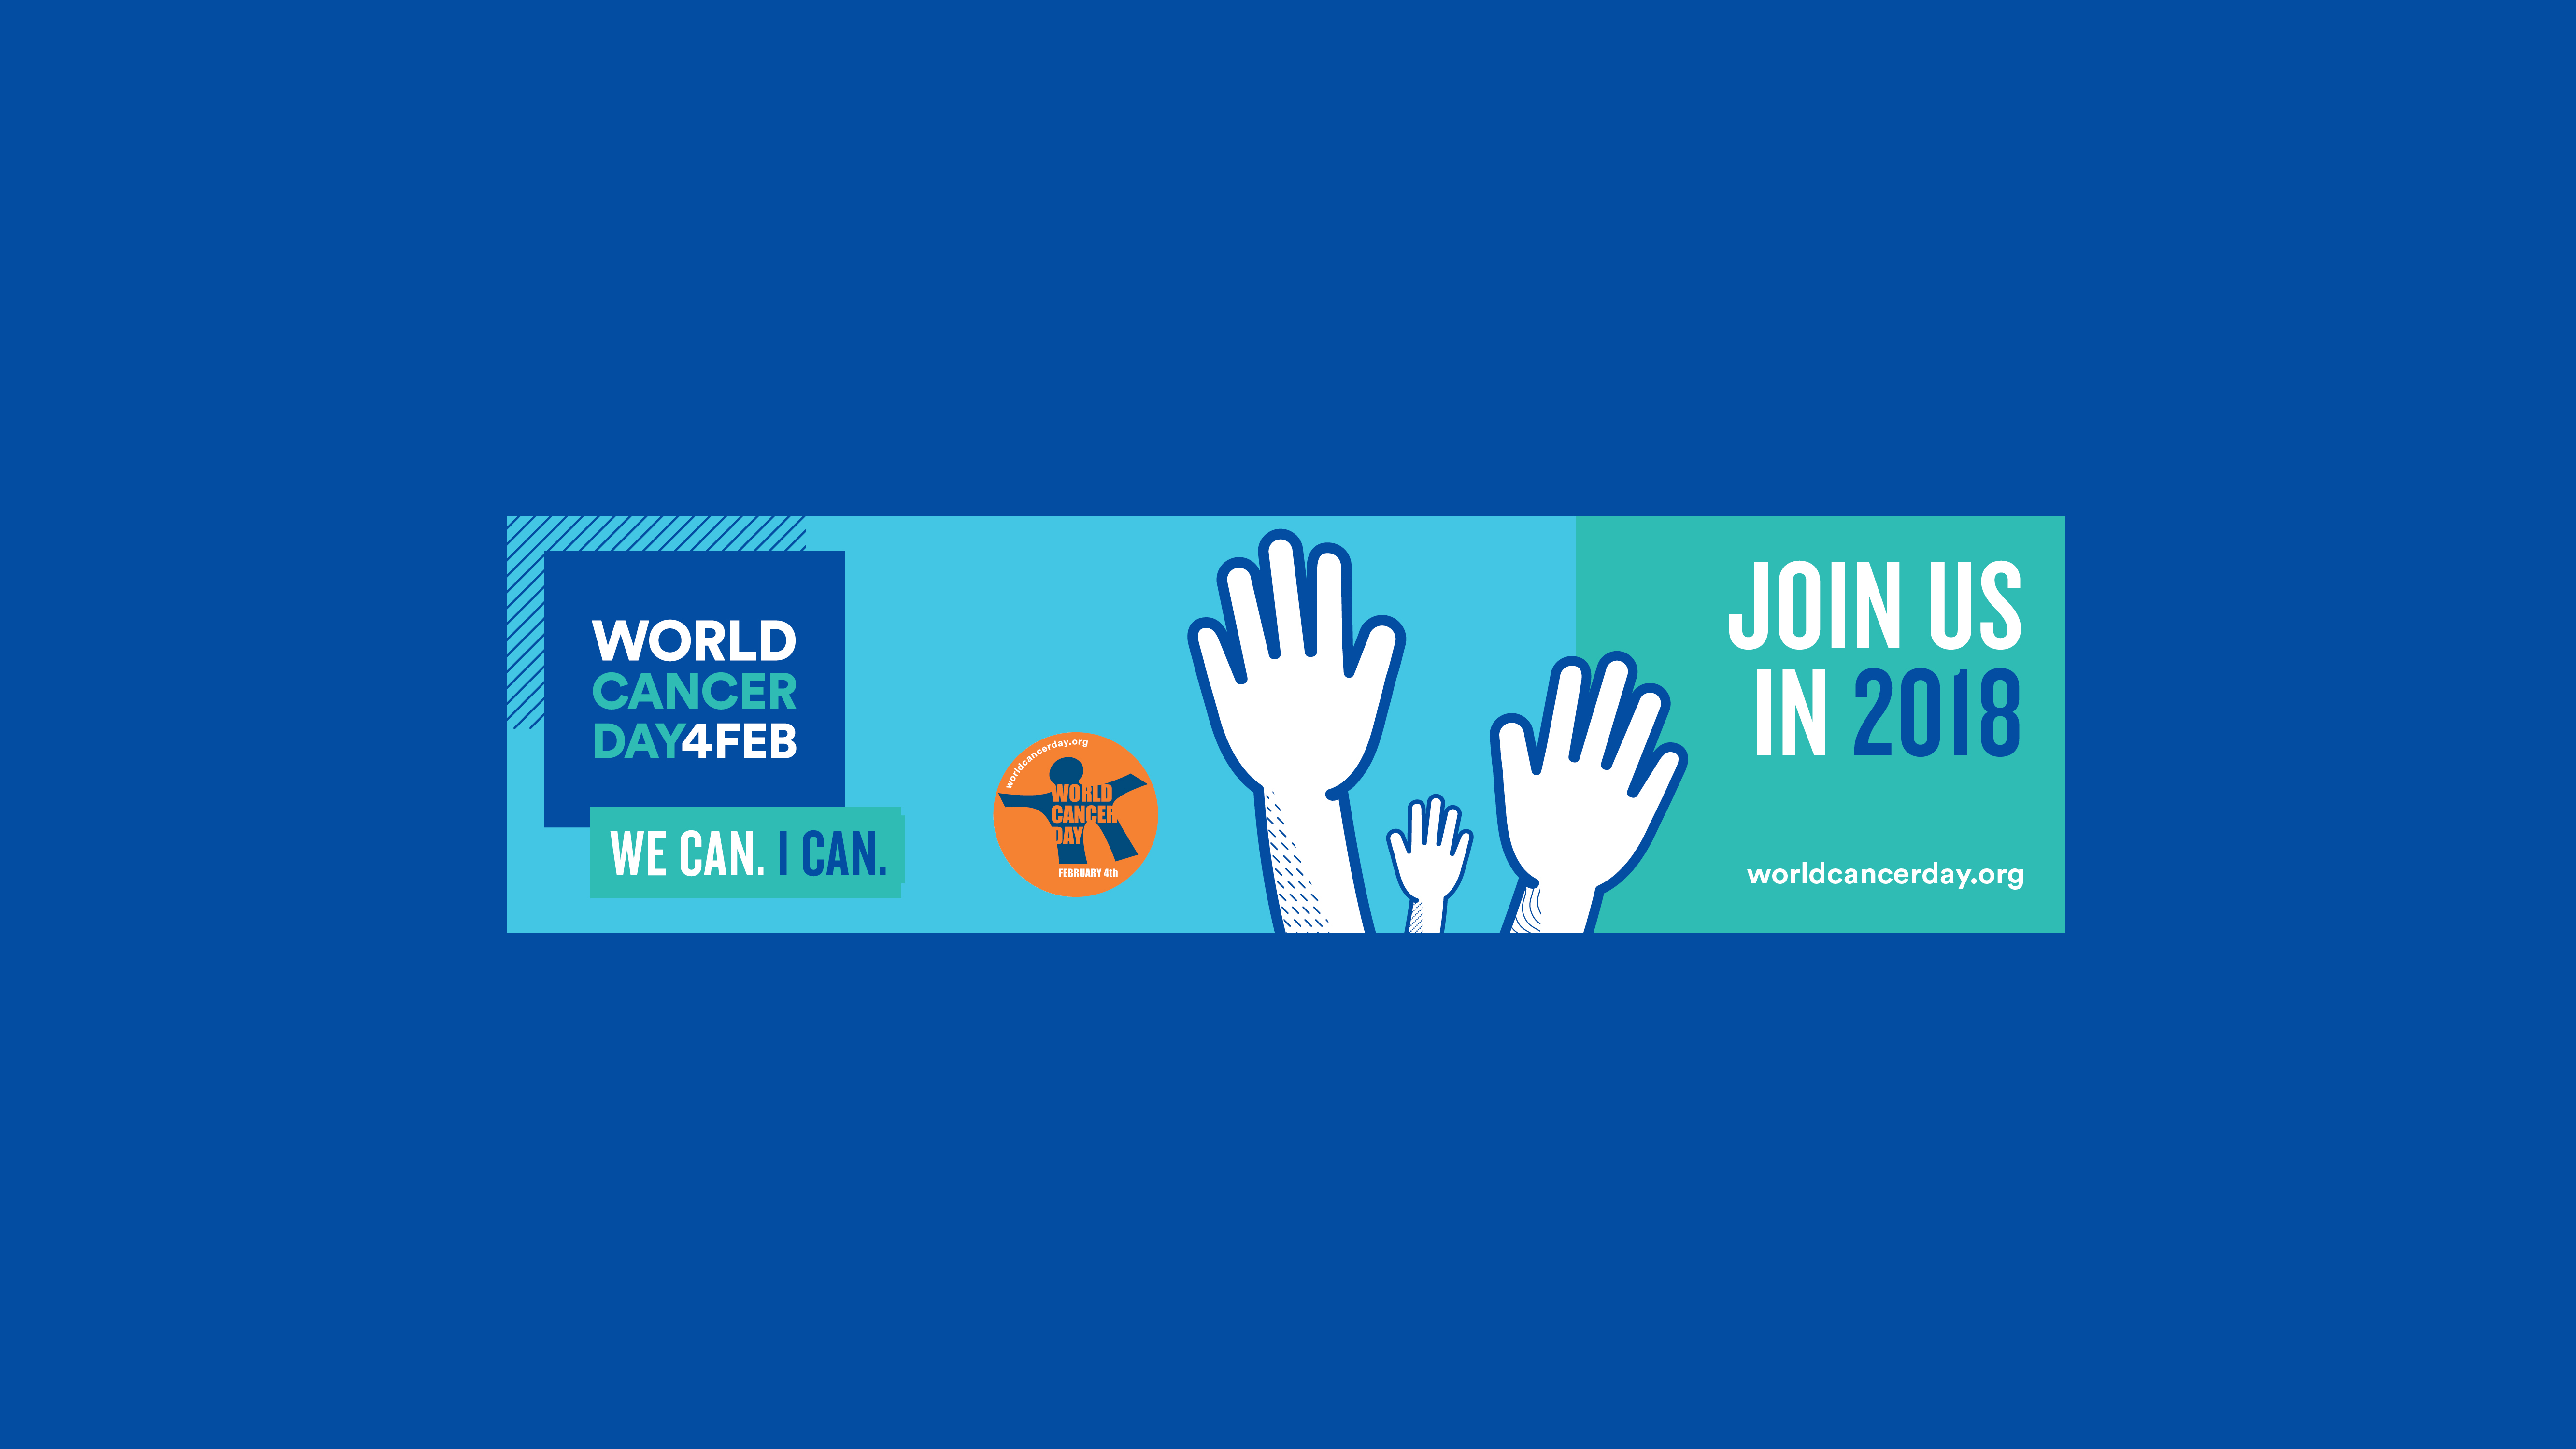 World Cancer Day: Cancer leaders call for equal access to